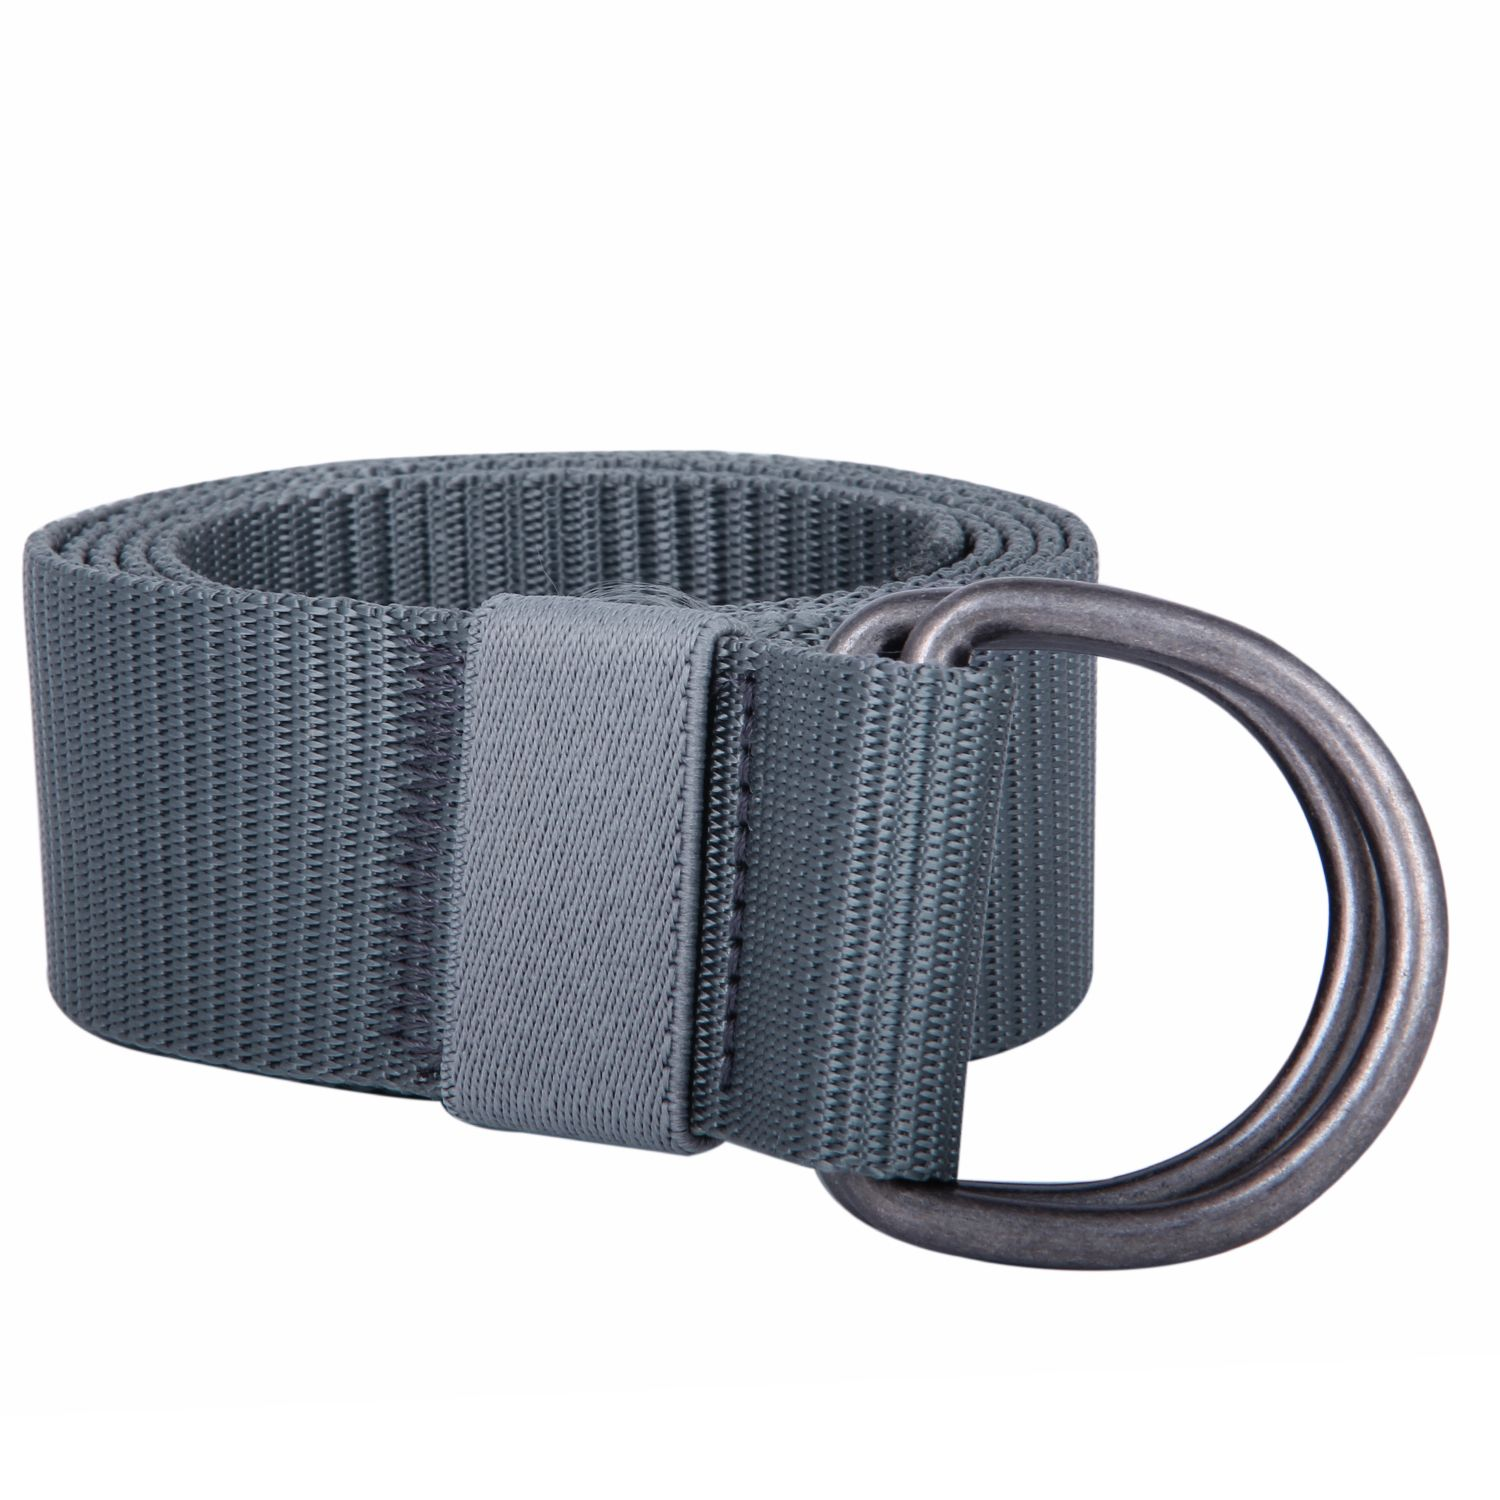 Jiniu Canvas Web Belts For Men Women Military Style Double D Ring